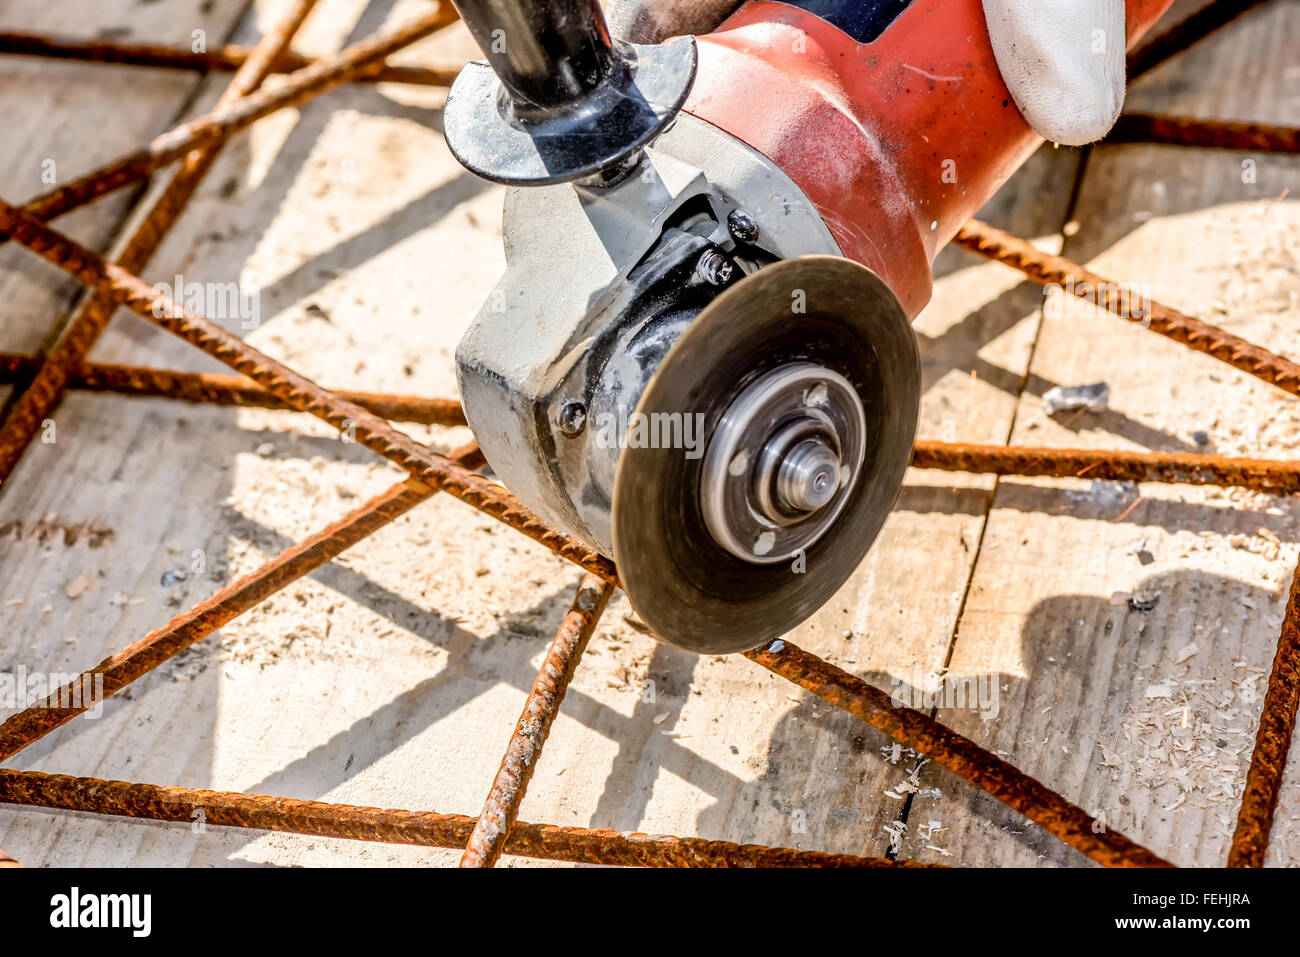 Worker cutting construction  steel net with Angle Grinder Machine closeup - Stock Image